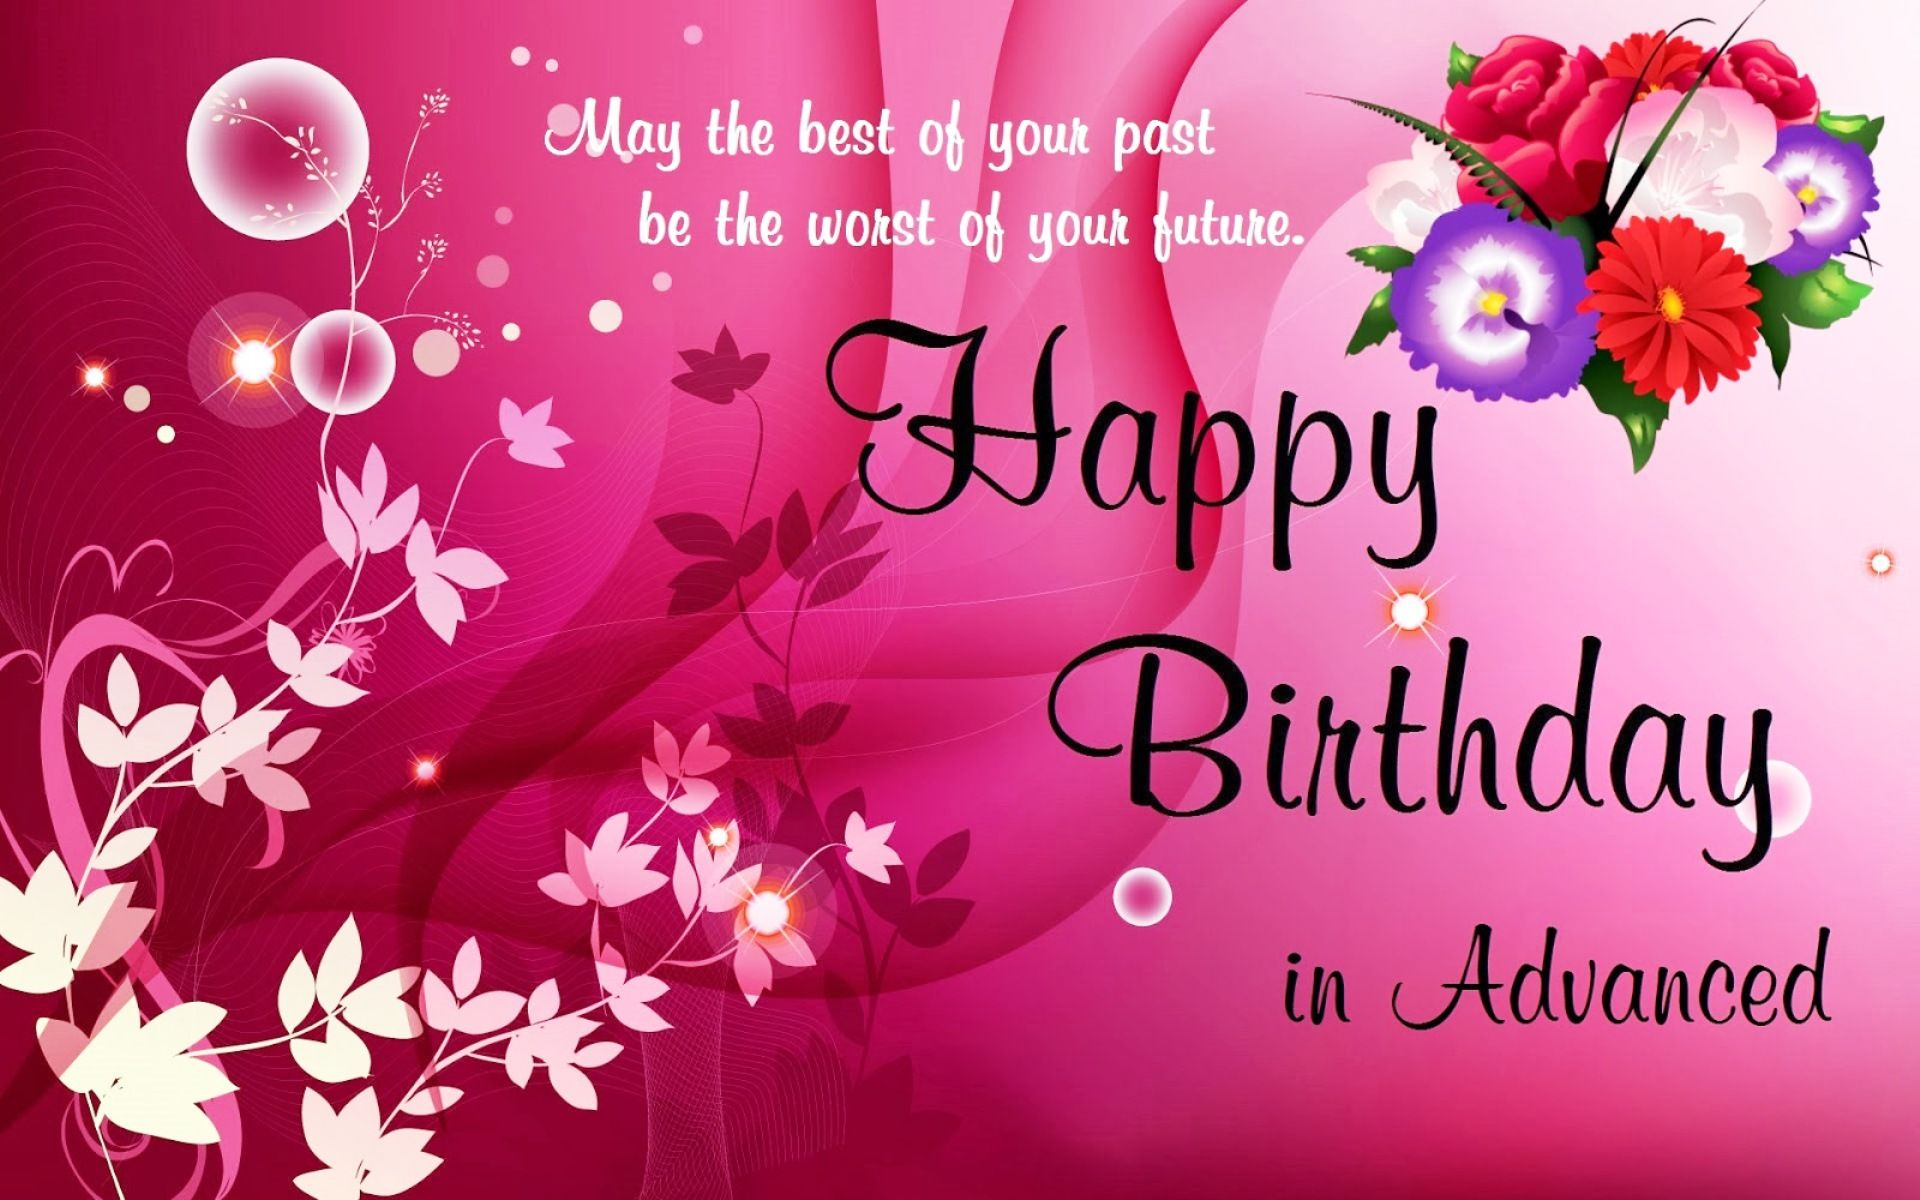 Happy Birthday Images Free Download With Wishes Advance Birthday